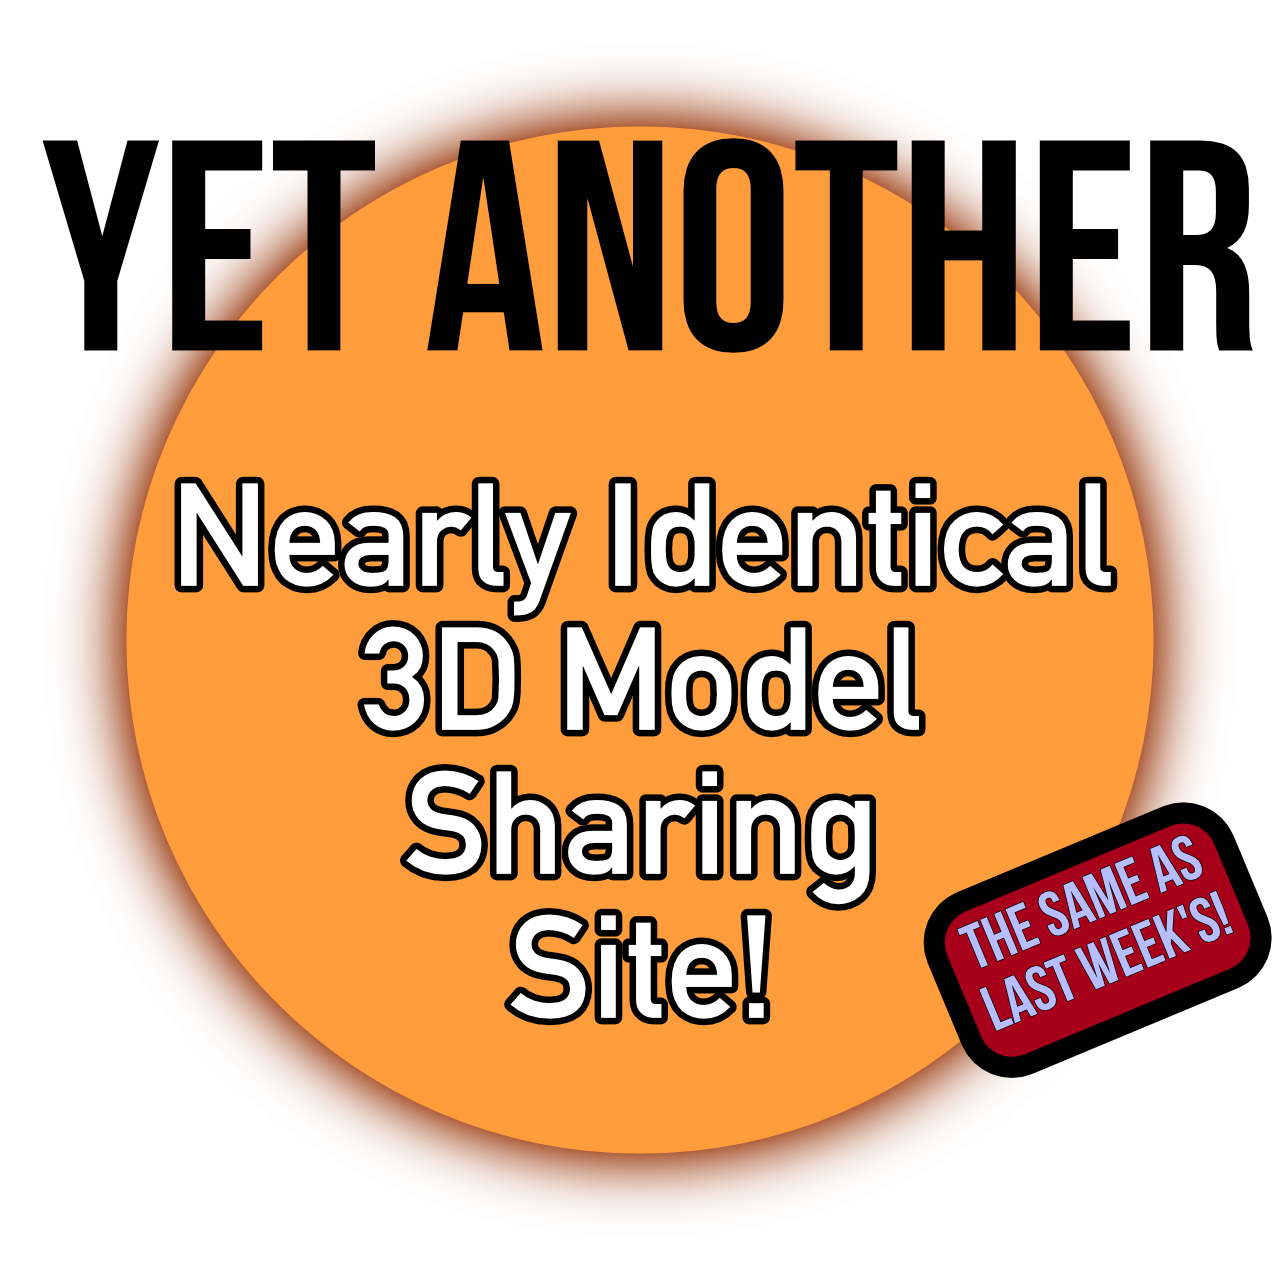 It's No Longer Possible To Launch A Printable 3D Model